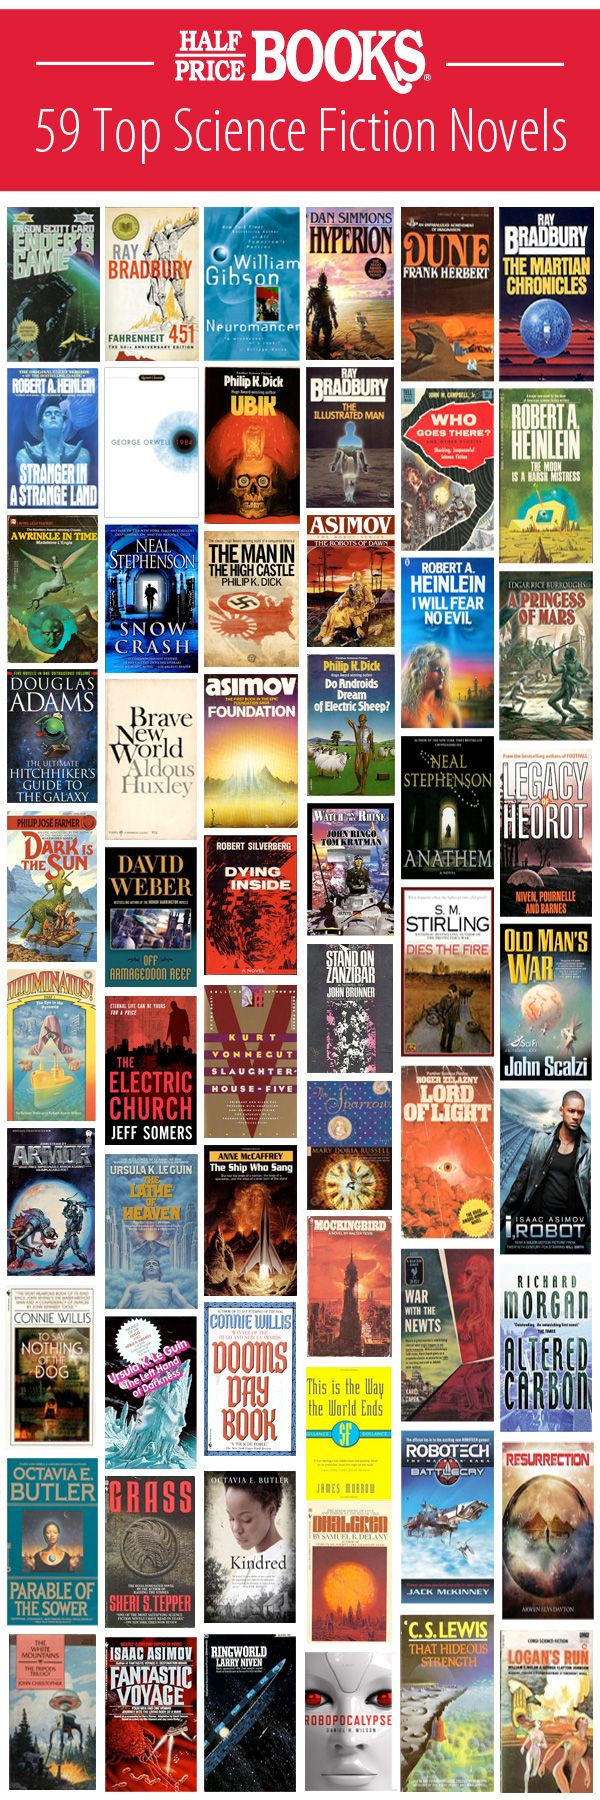 Science Fiction - Best Science Fiction Novels,compiled by Half Price Books employees! HPB.com